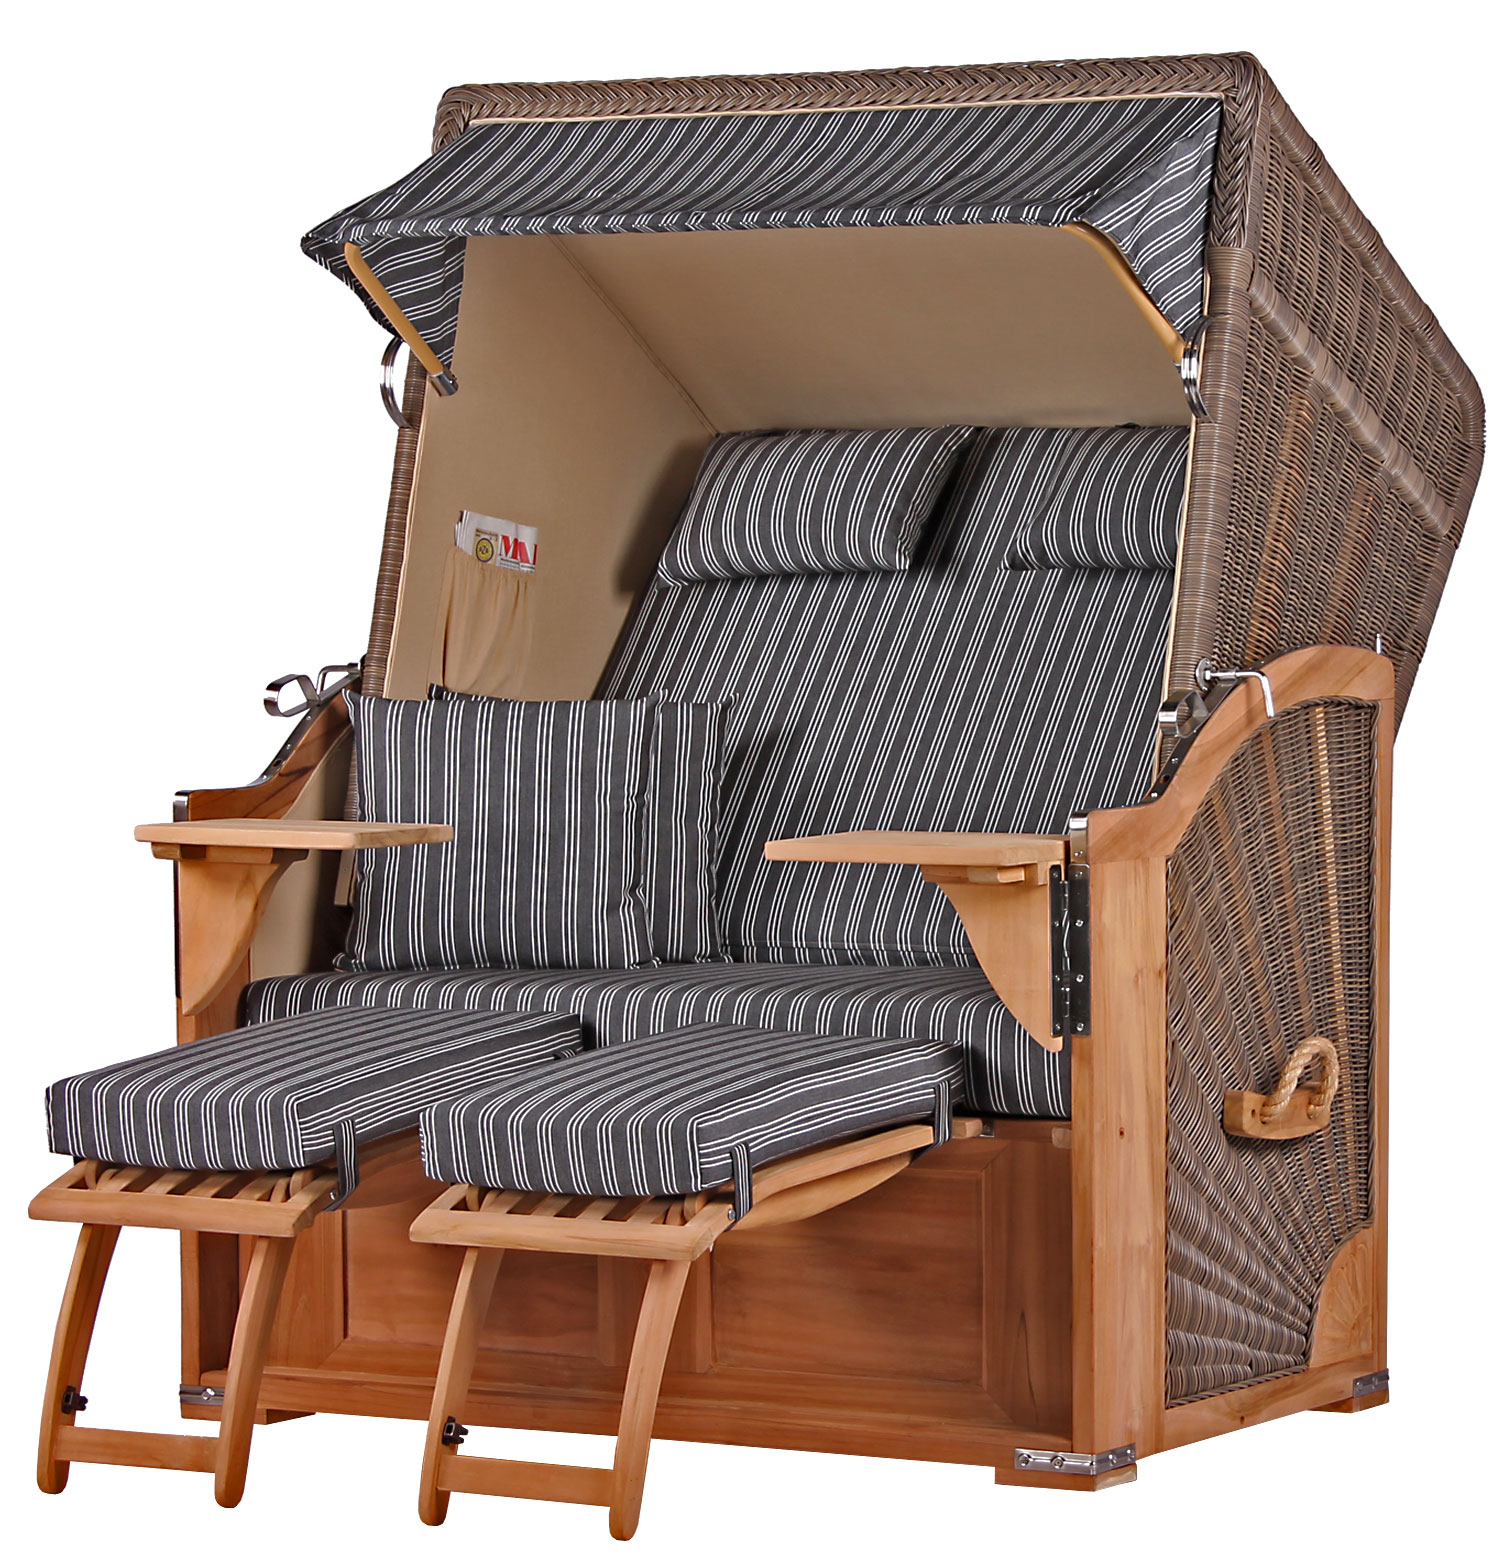 strandkorb kaufen trendy strandkorb gnstig kaufen u allgemeine strandkorb gnstig kaufen with. Black Bedroom Furniture Sets. Home Design Ideas